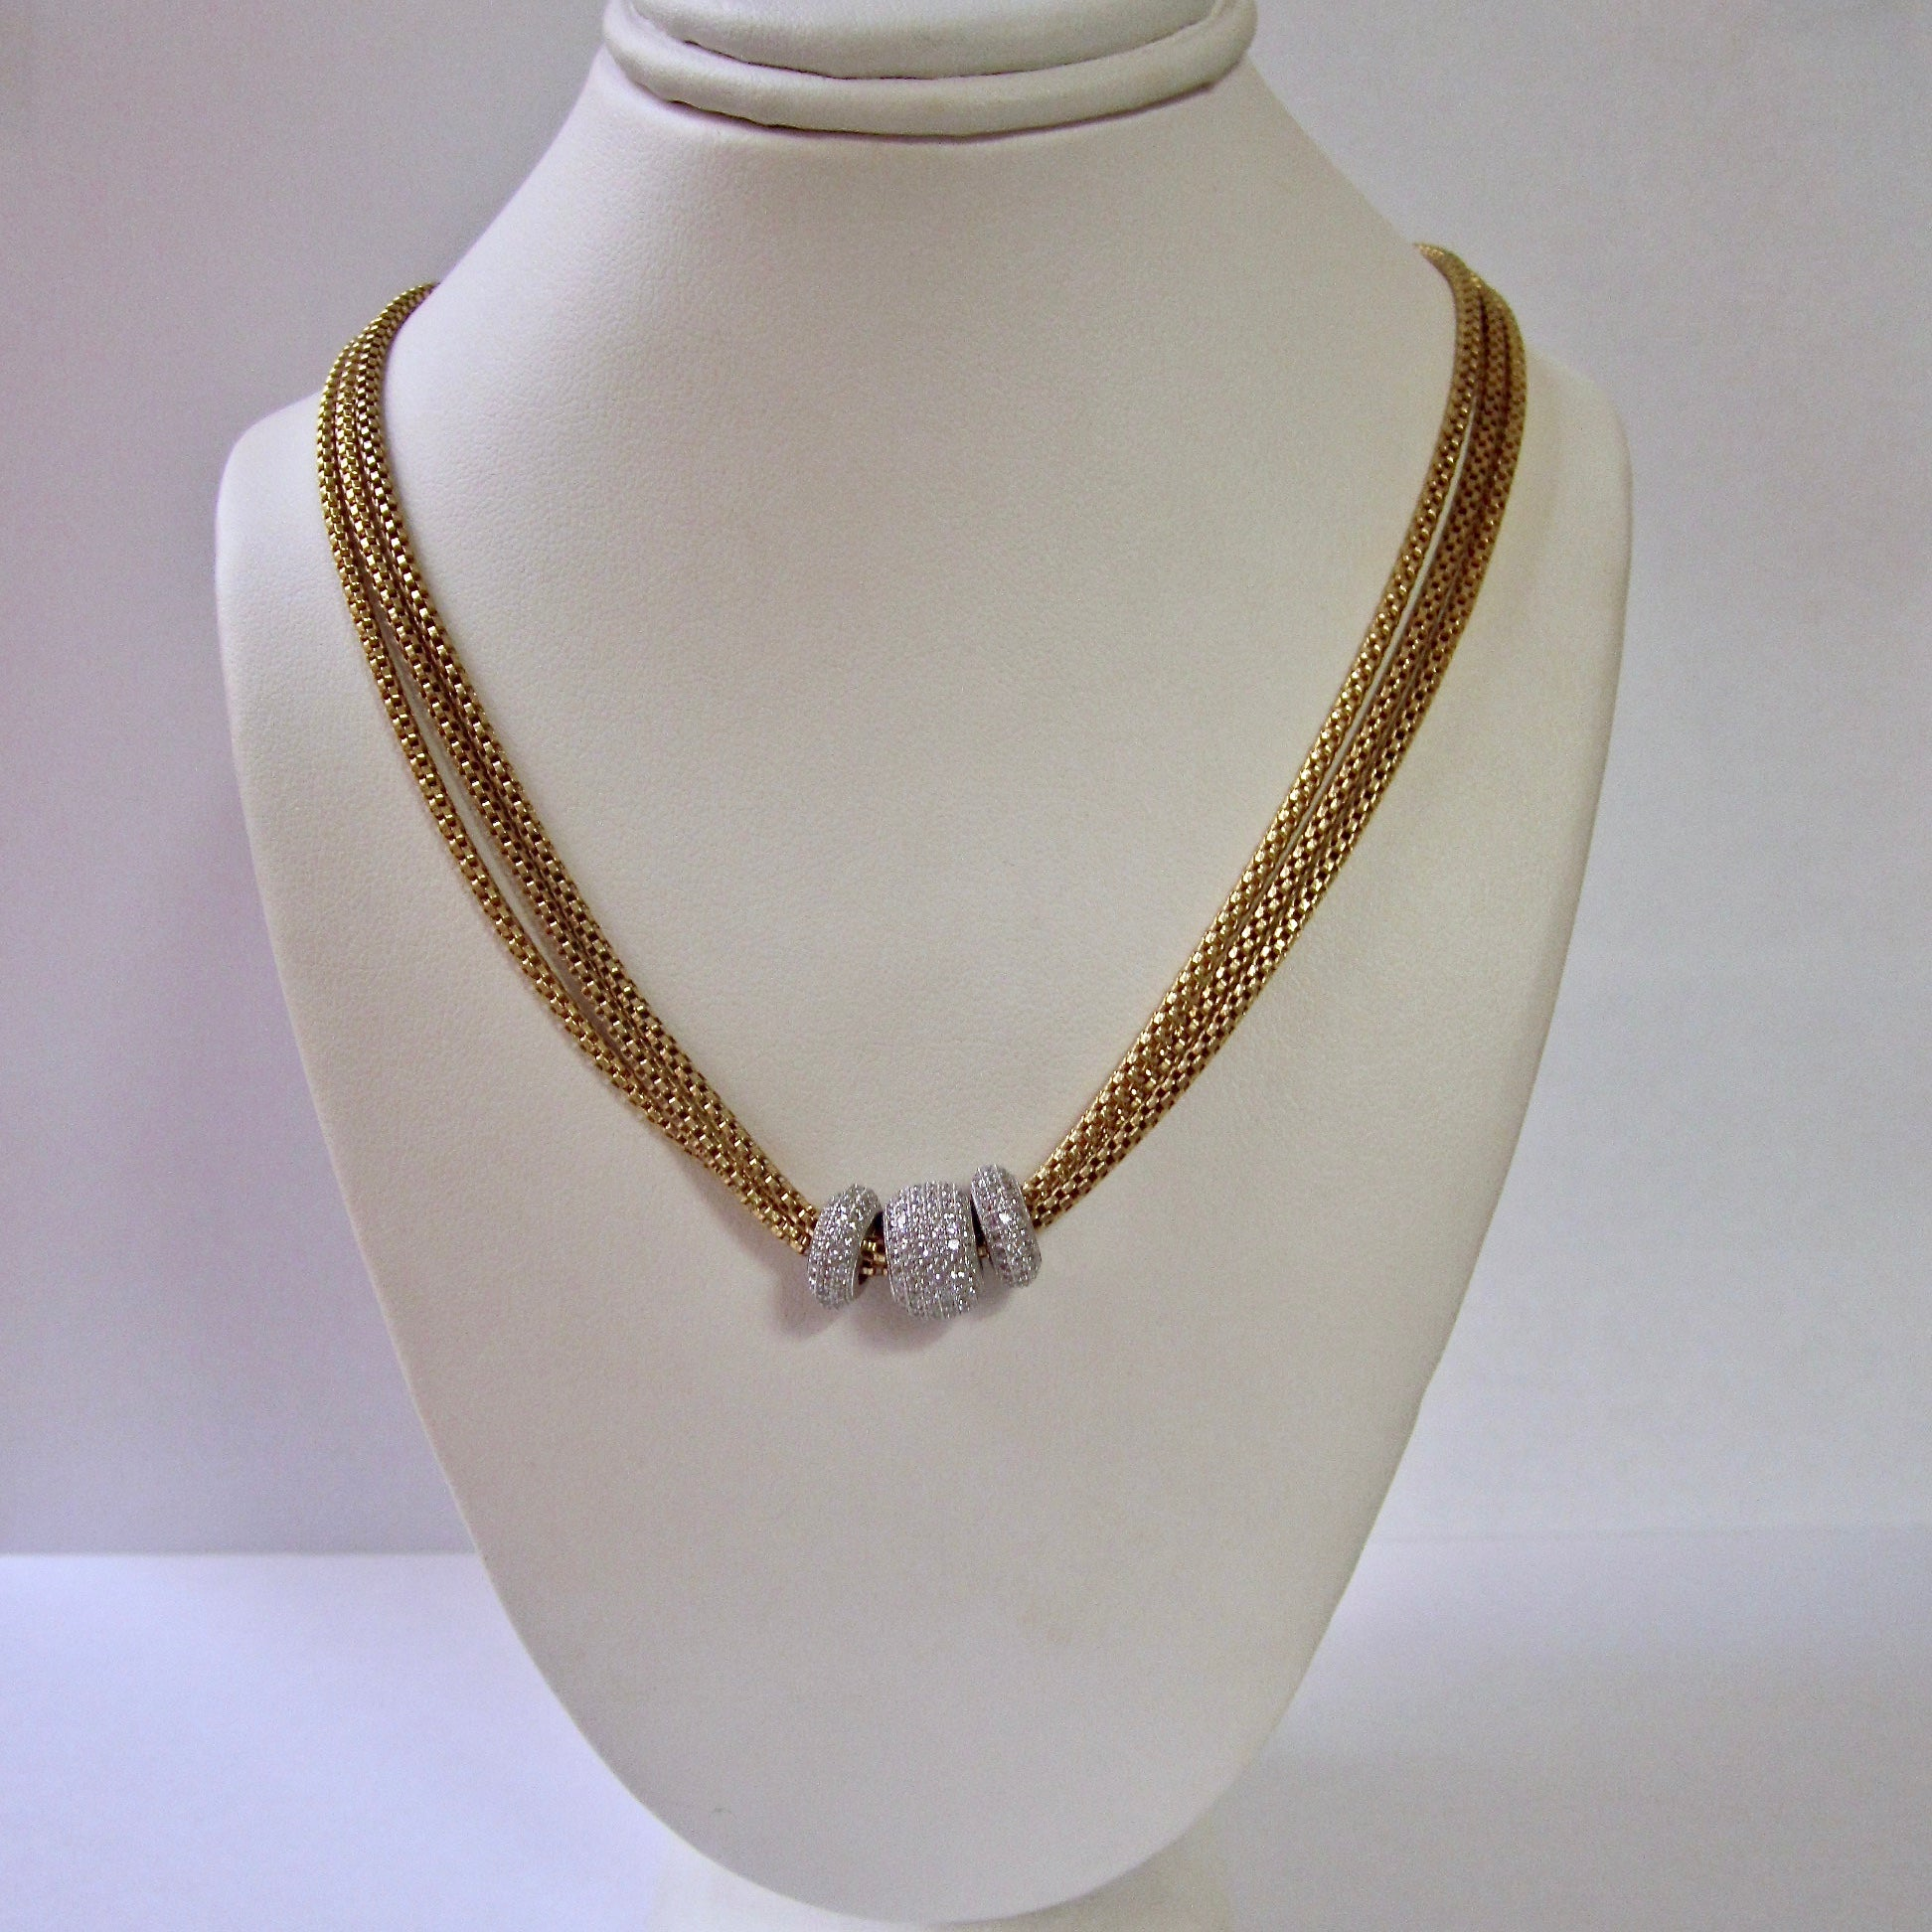 Three Strand Gold Plated Sterling Silver Necklace